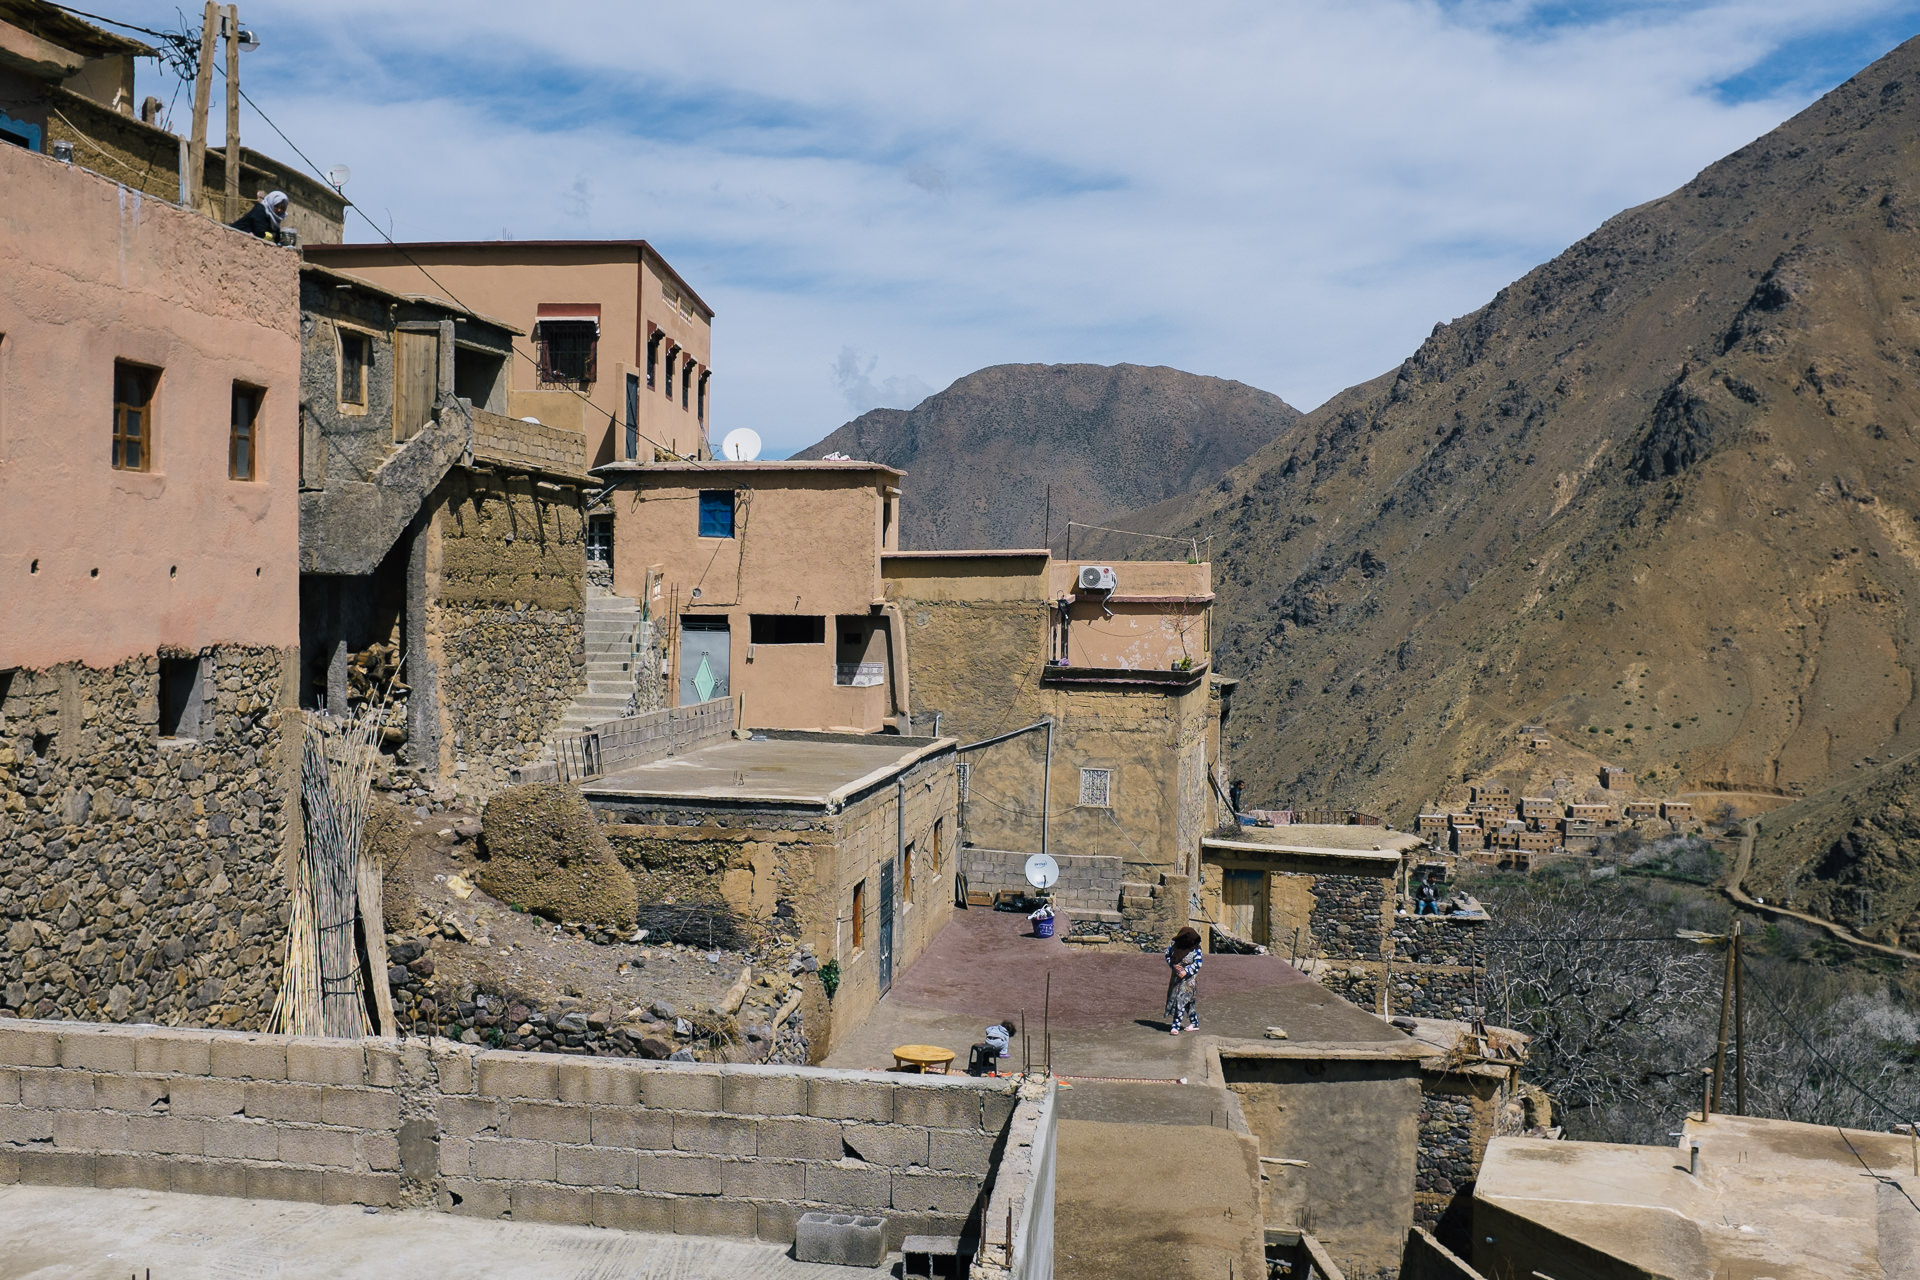 Berbers village and houses in Morocco